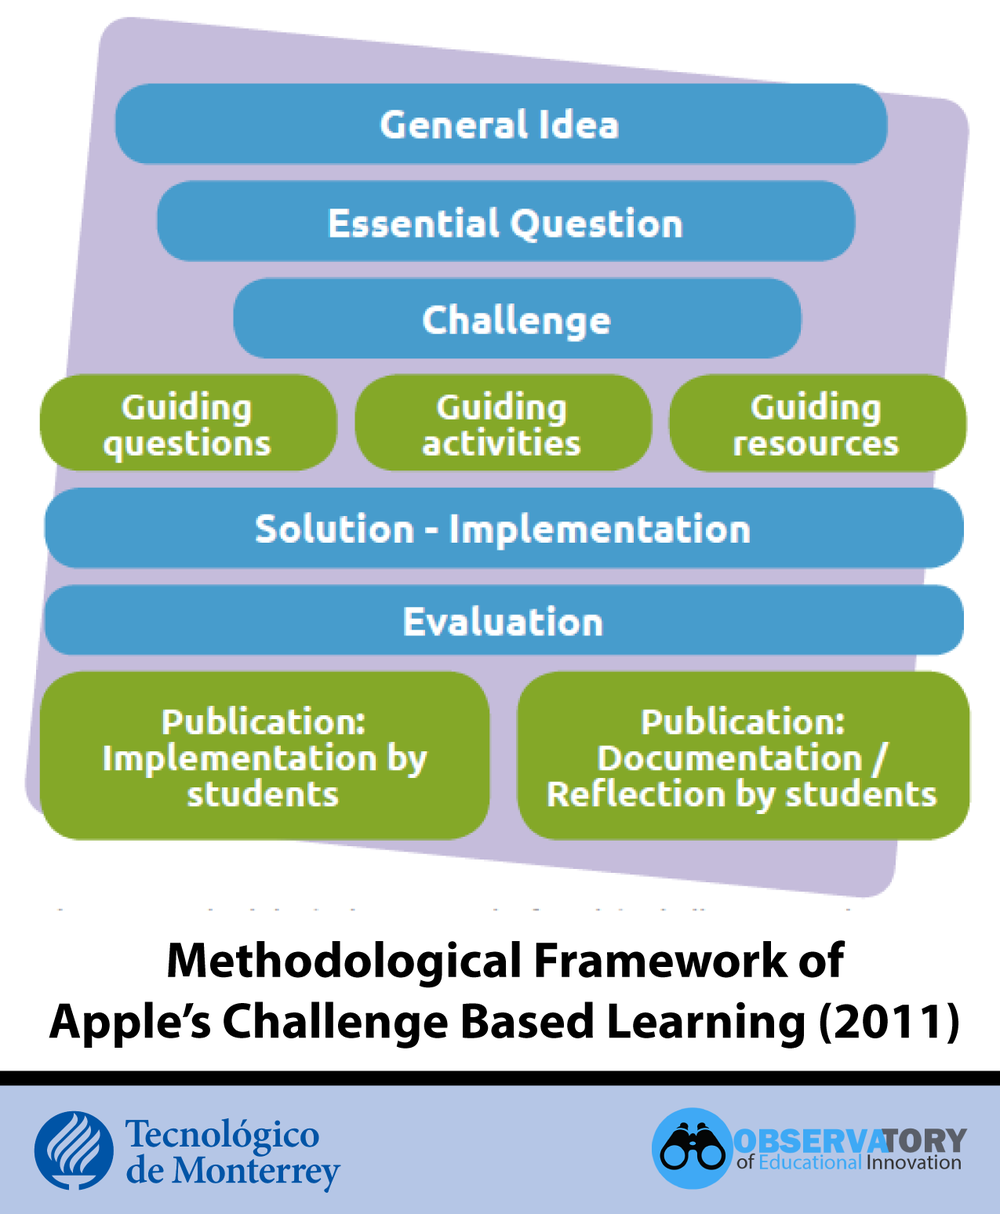 Apple's Challenge Based Learning